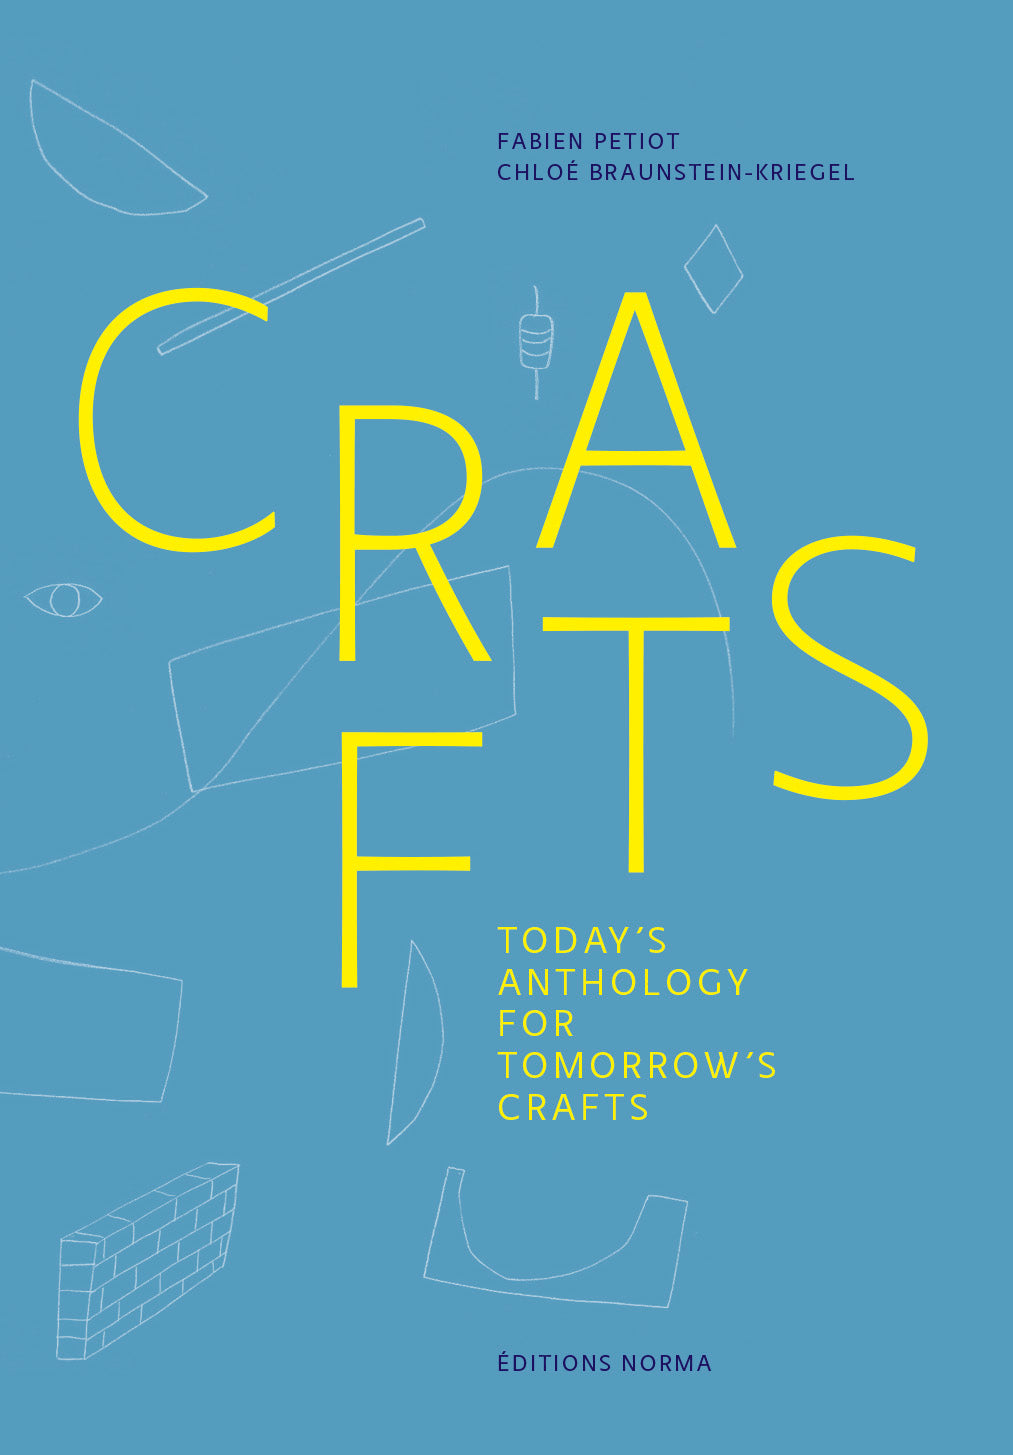 Crafts, Today's Anthology for Tommorow's Crafts